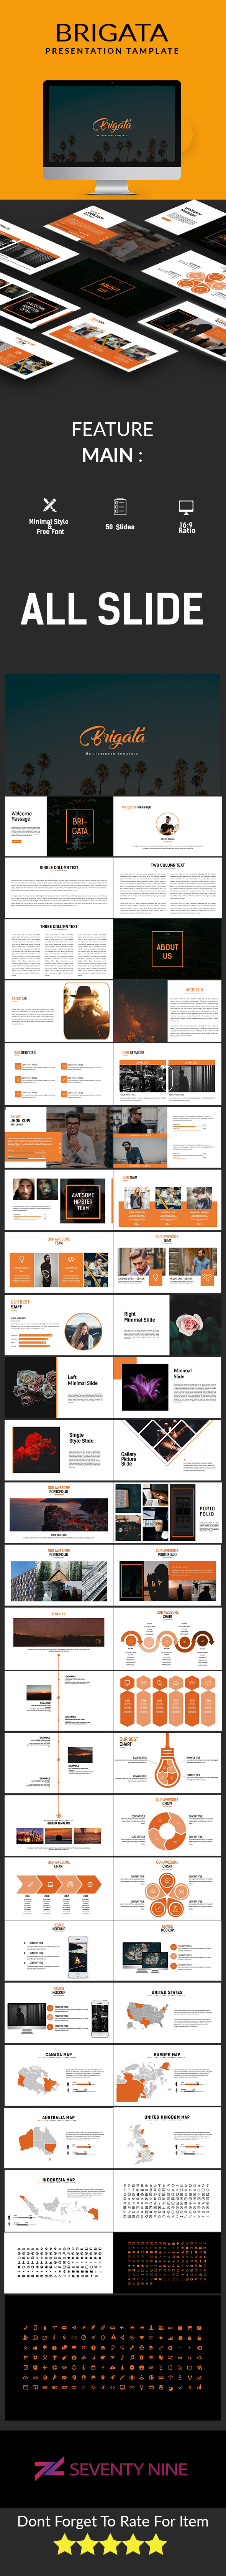 Brigata Multipurpose Powerpoint Template - PowerPoint Templates Presentation Templates